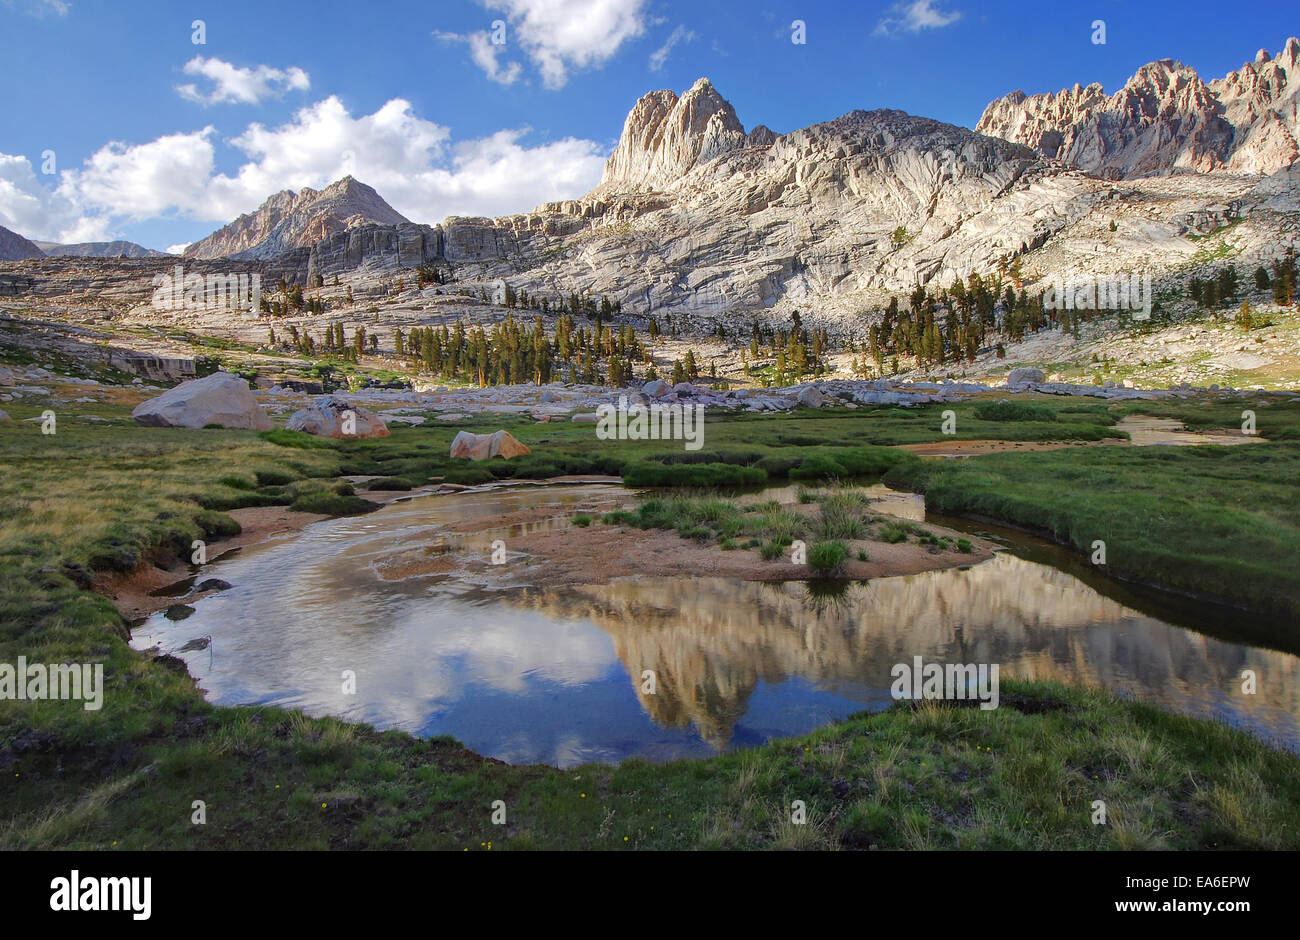 USA, California, Sequoia National Park, Reflections in Miter Basin Stock Photo